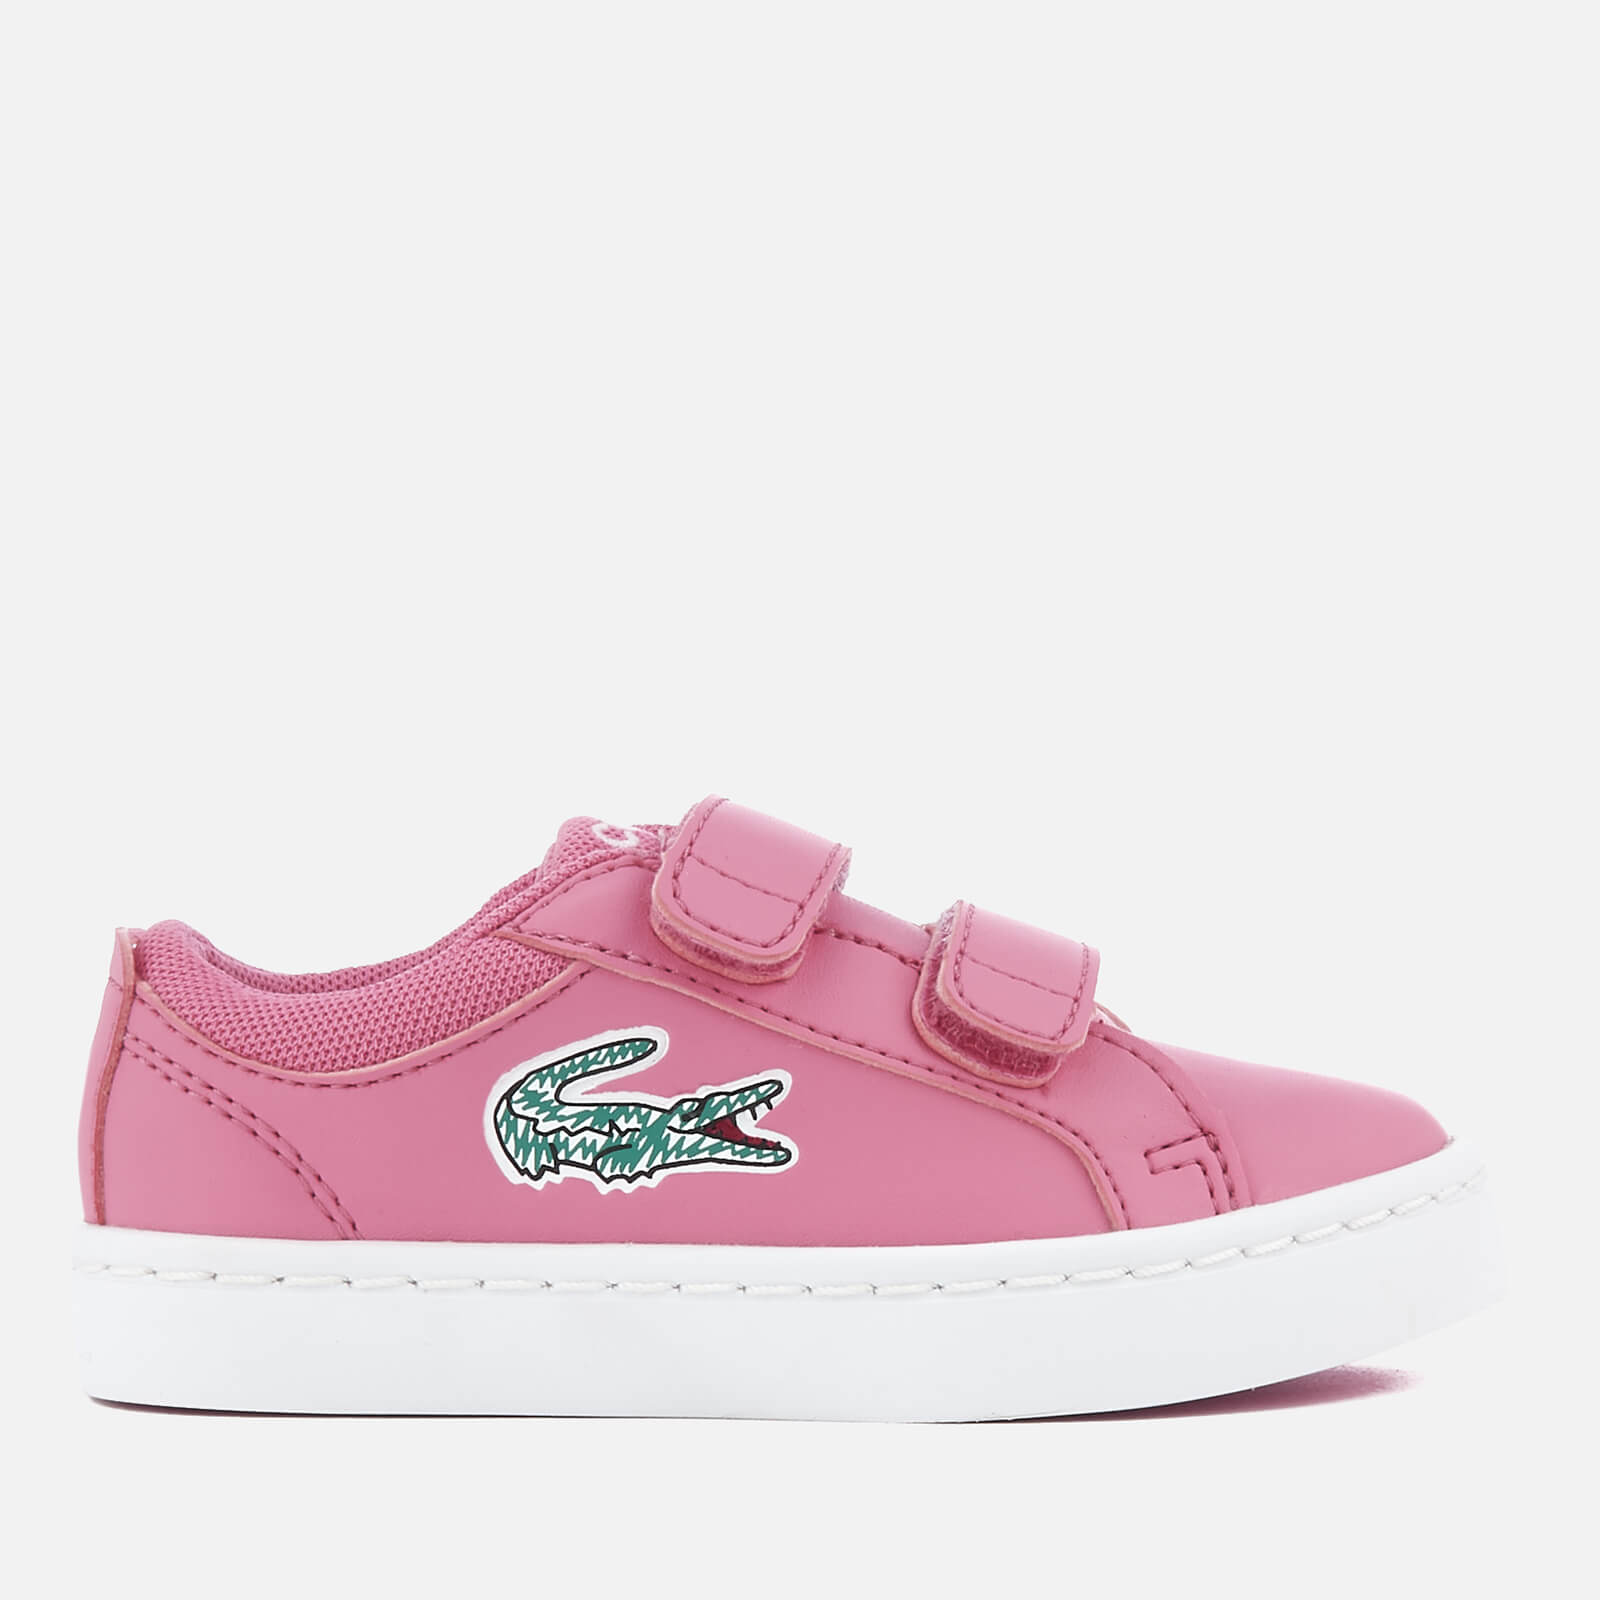 689fc0554 Lacoste Toddlers  Straightset Lace 118 1 Trainers - Pink White Junior  Clothing